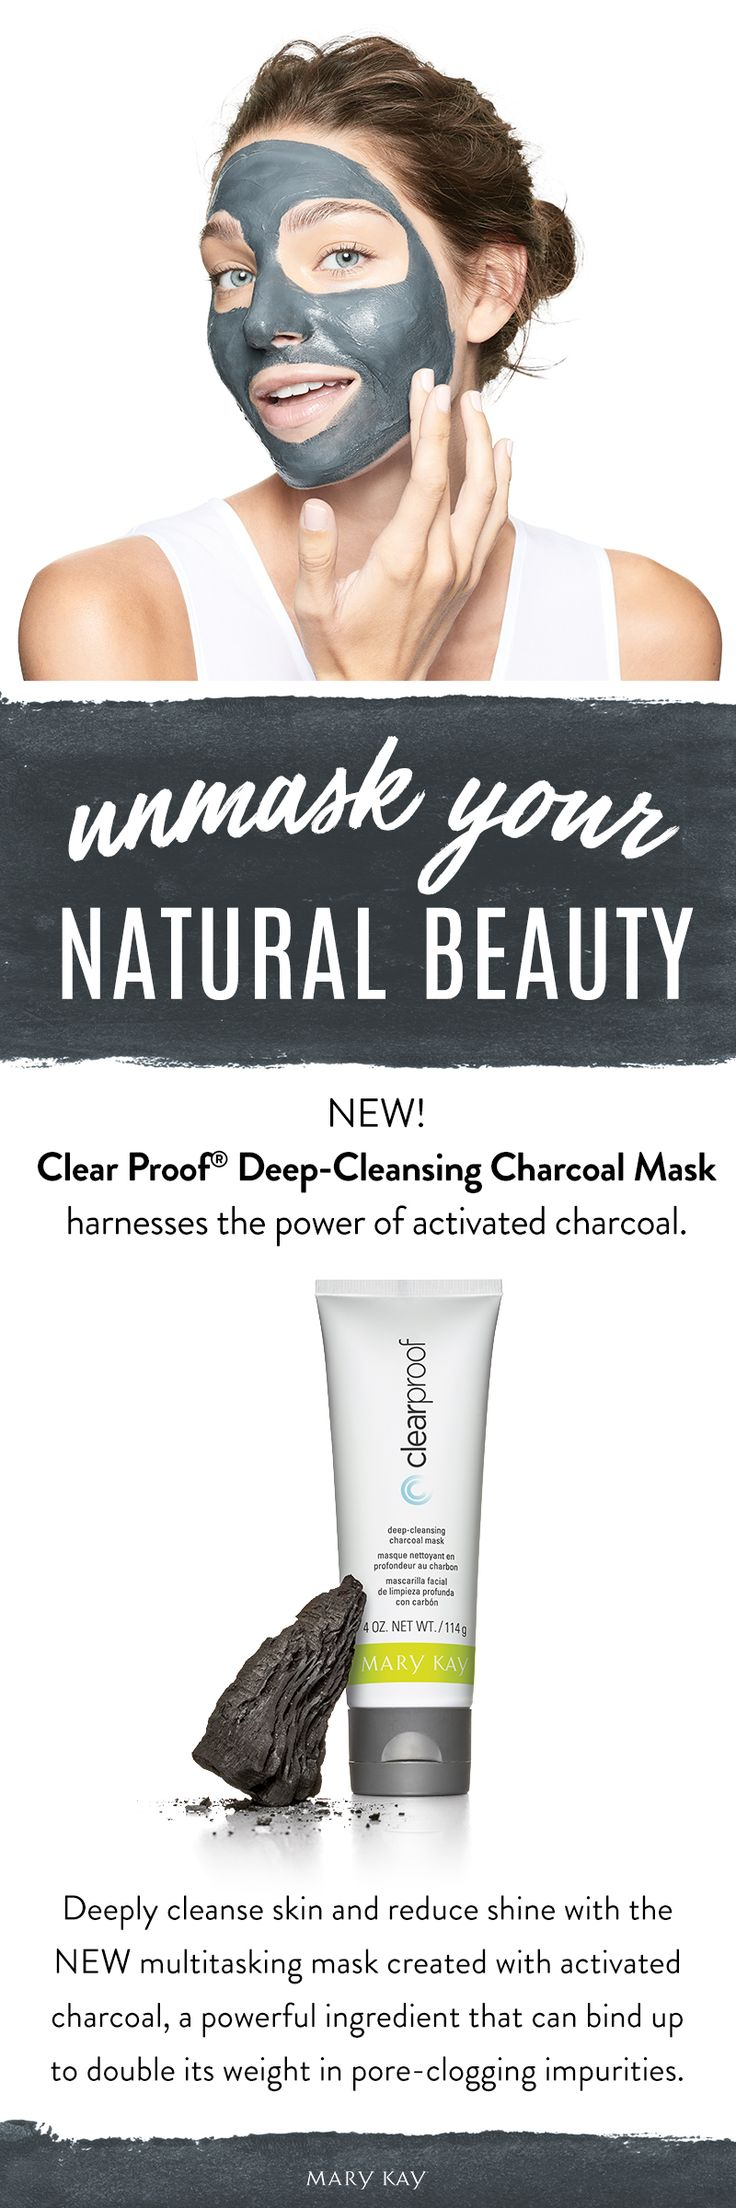 Our deep-cleansing mask uses the power of charcoal to help unclog pores and take skin beyond everyday clean. As a result, your complexion looks clearer and healthier, and pores appear minimized. | Mary Kay